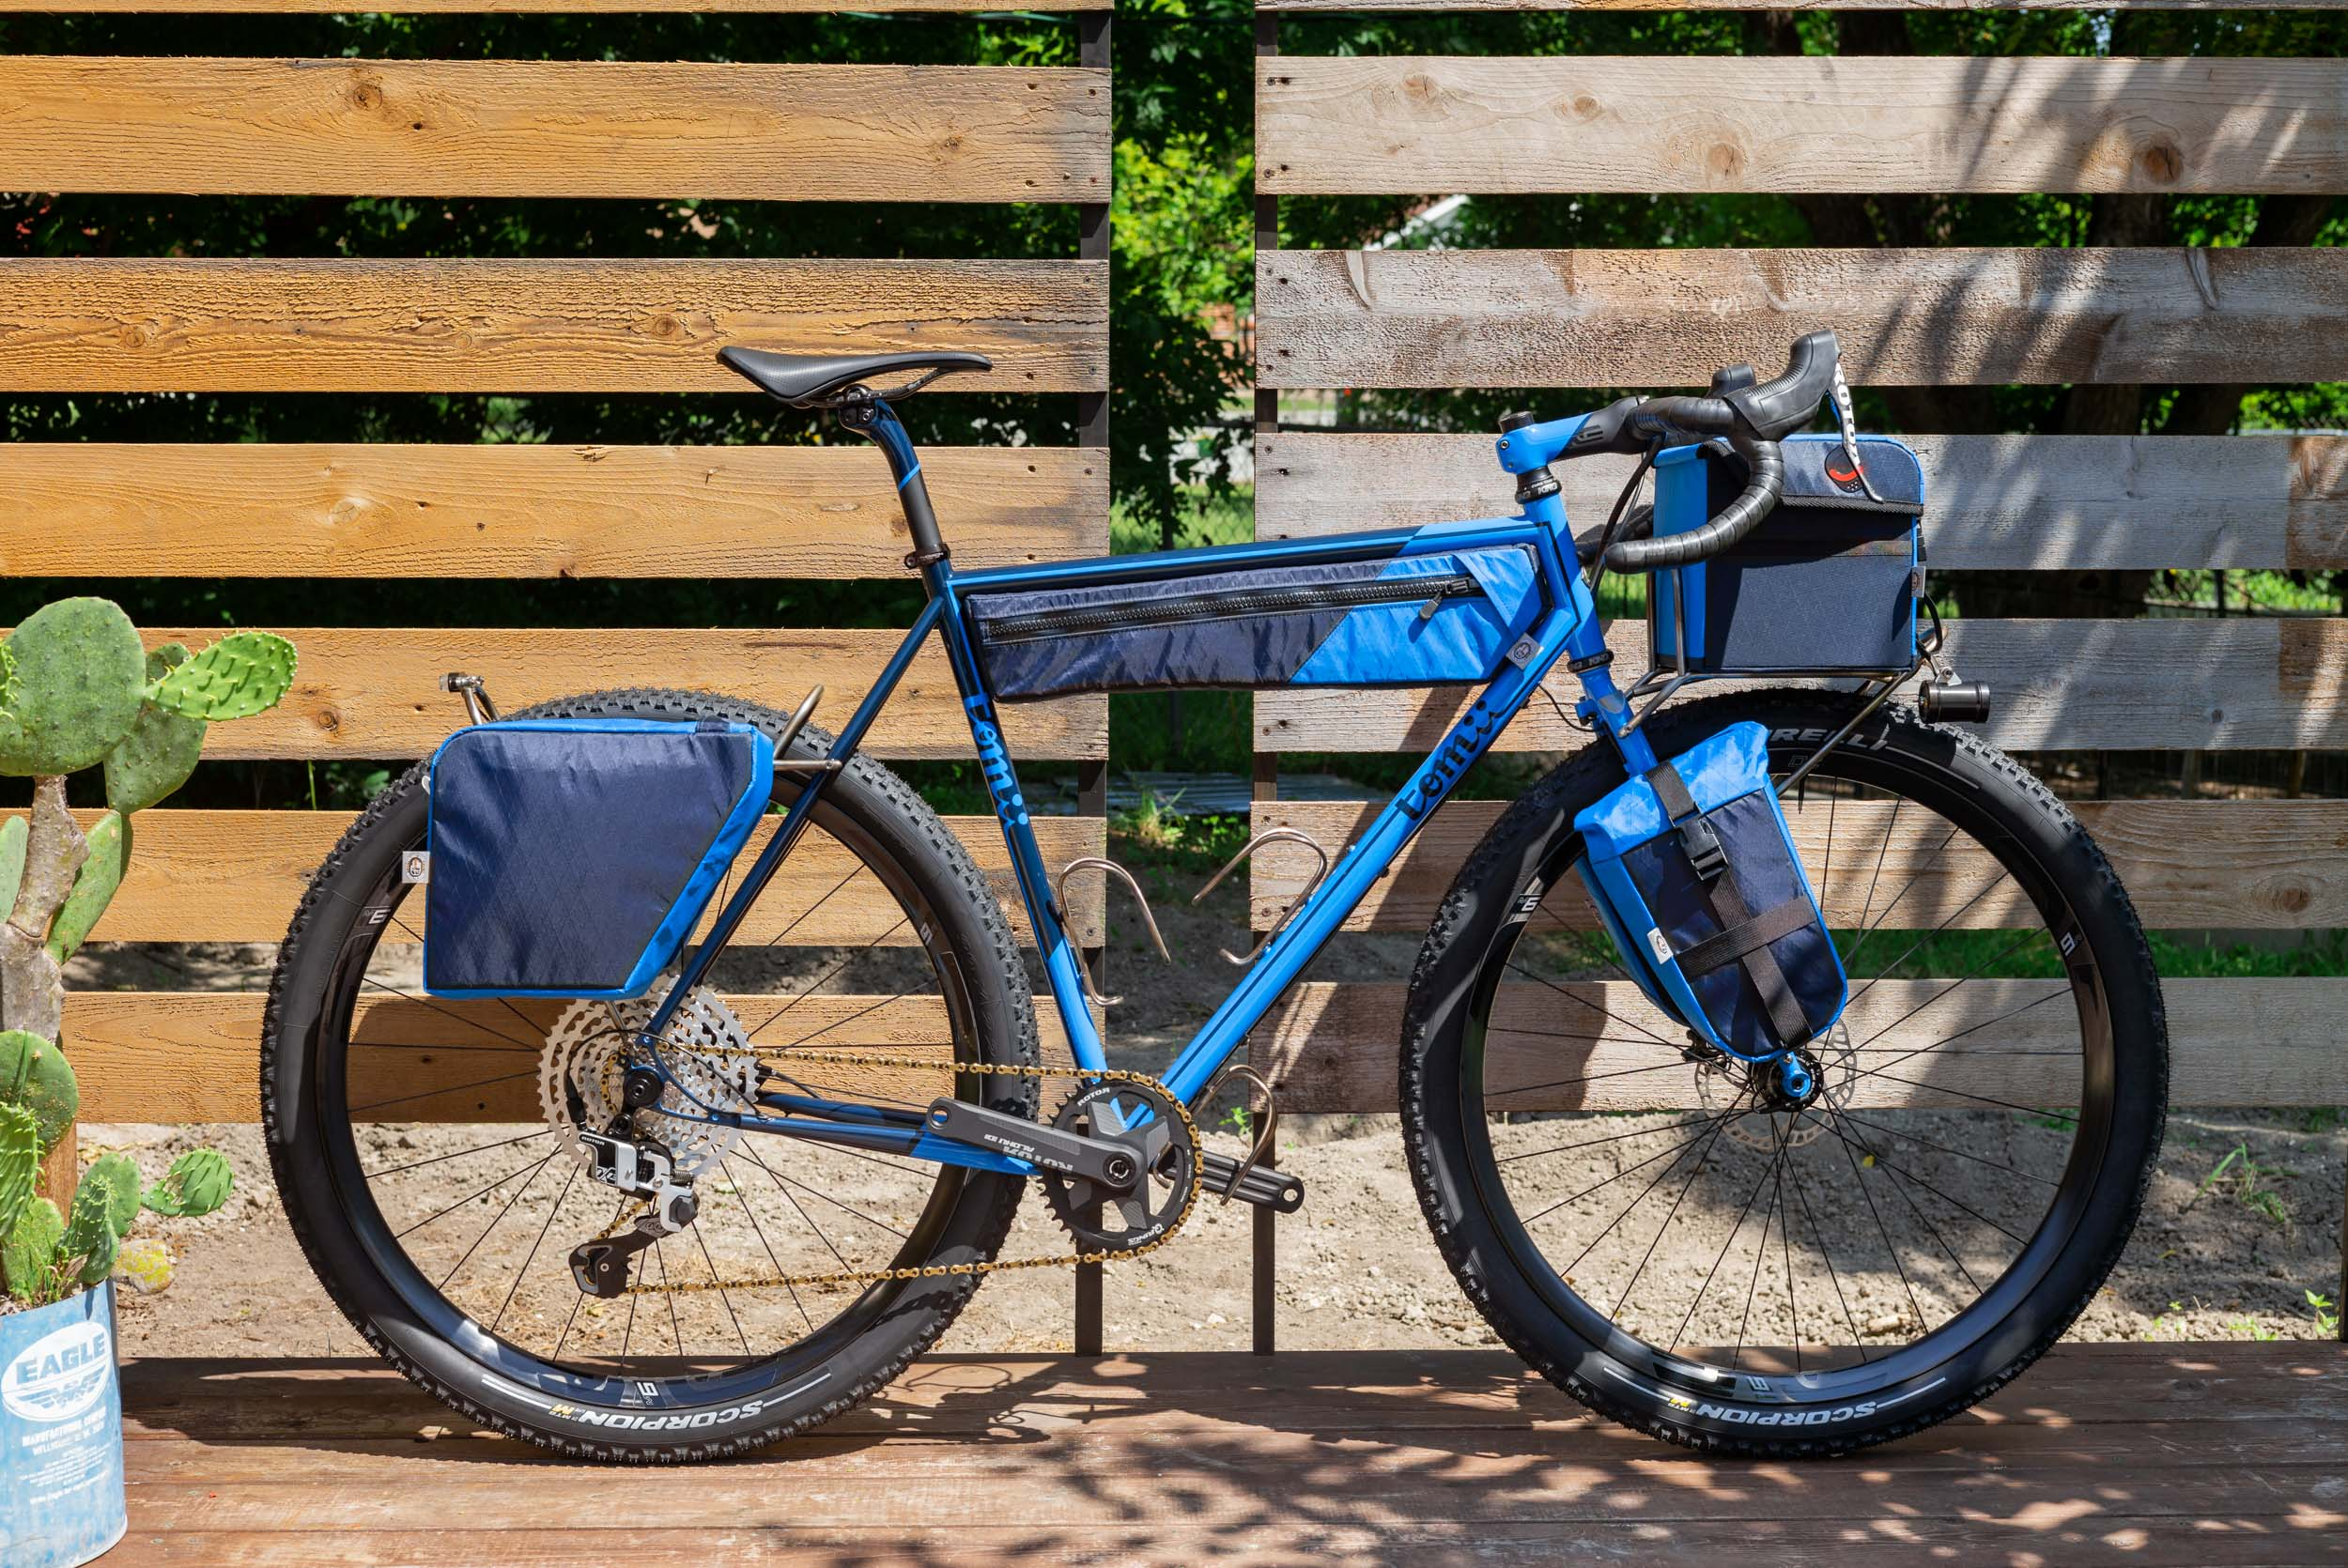 Kevin Girkins custom bike by Tomii Cycles, featuring ROTOR 1x13 groupset in 12-speed mode